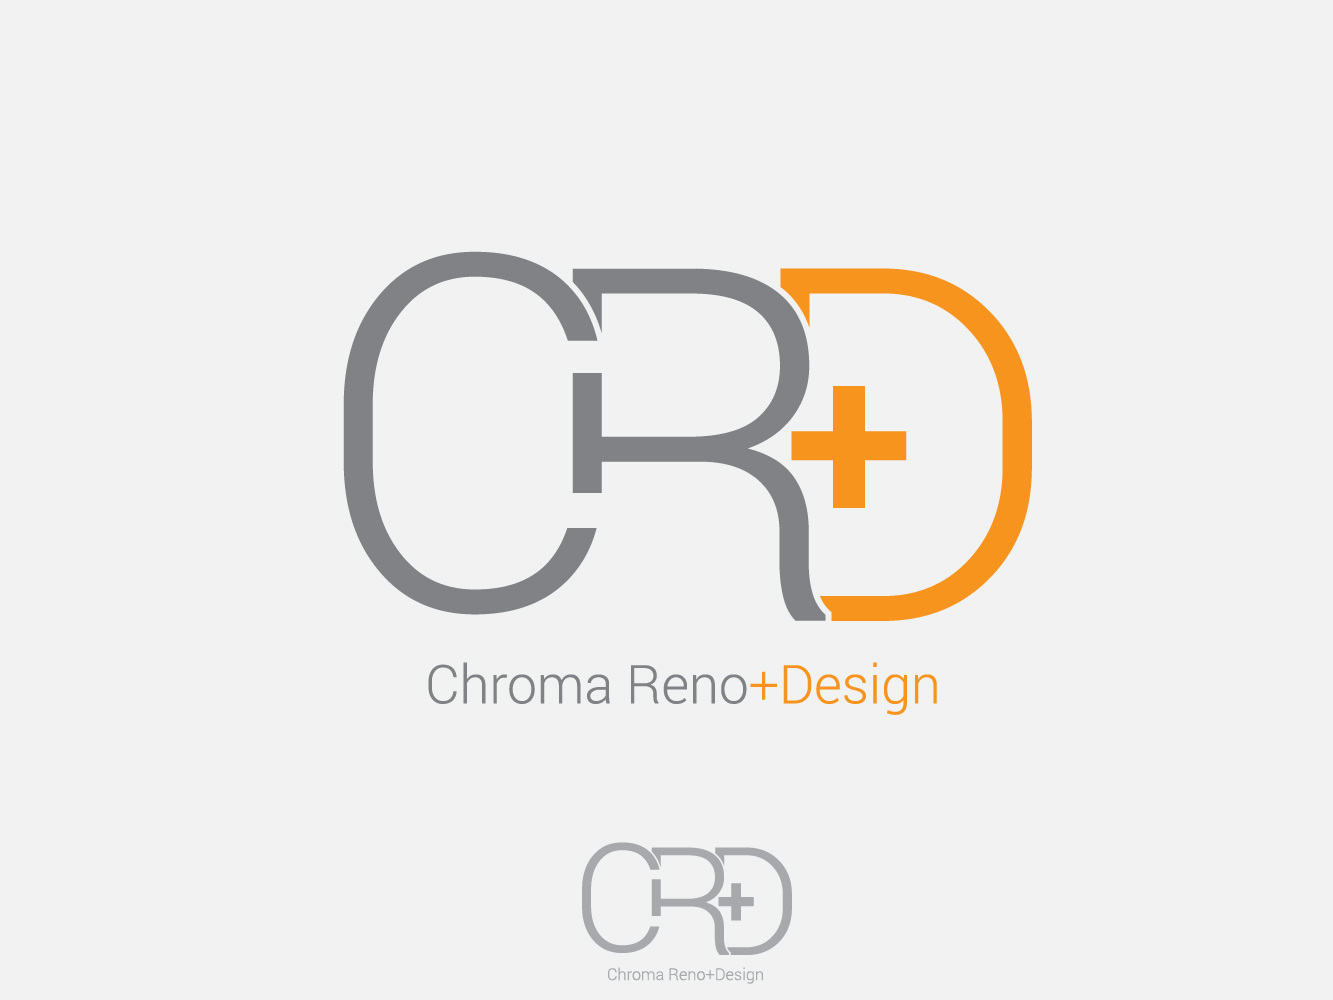 Logo Design by Jerameel Cabautan - Entry No. 8 in the Logo Design Contest Inspiring Logo Design for Chroma Reno+Design.